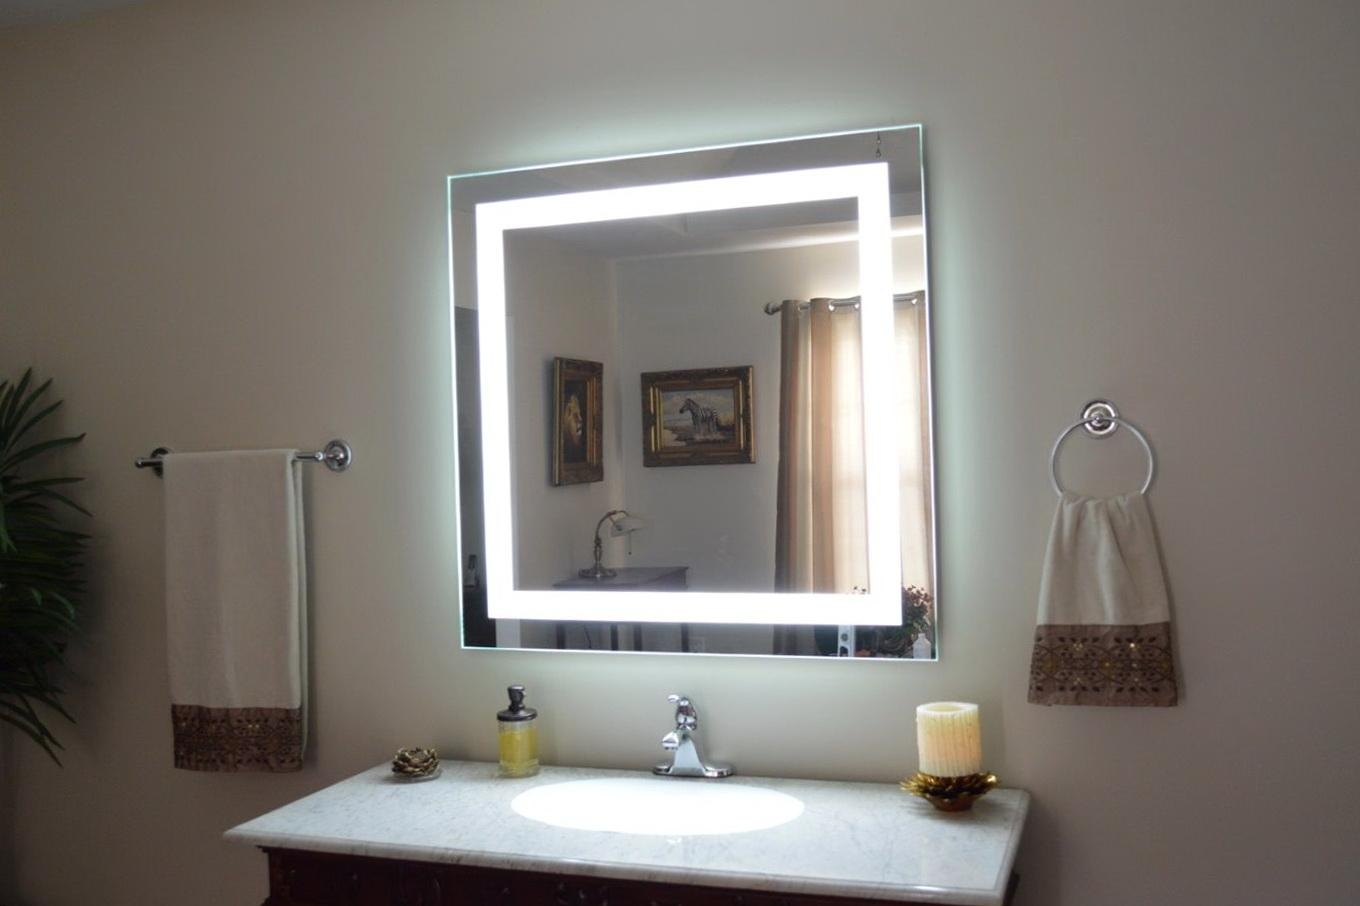 Ikea Bathroom Wall Mirror With Lights Square – Decofurnish Intended For Bathroom Wall Mirrors With Lights (Image 14 of 20)